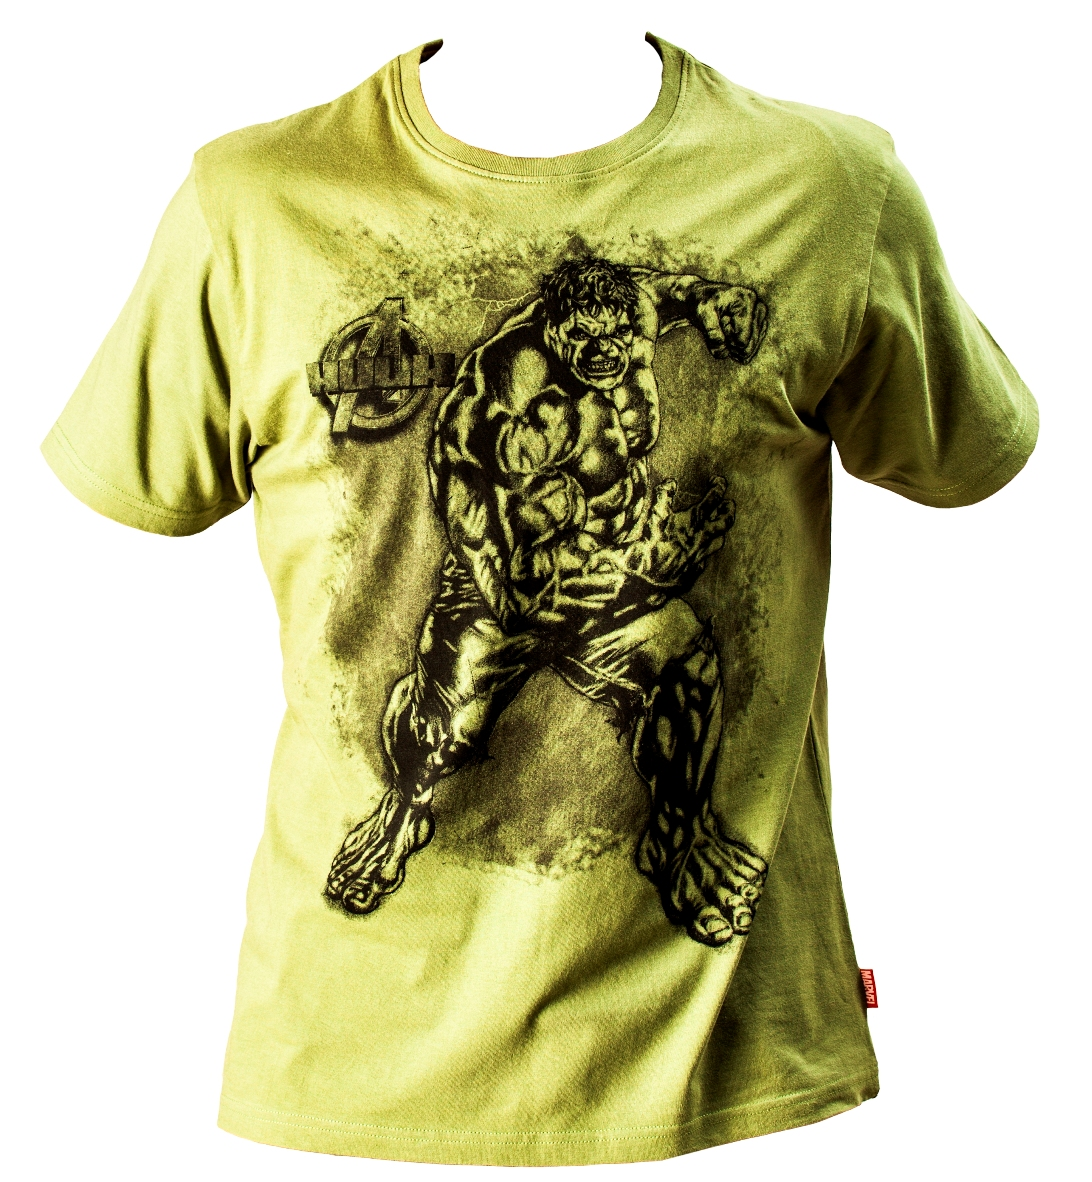 Green Hulk T-shirt